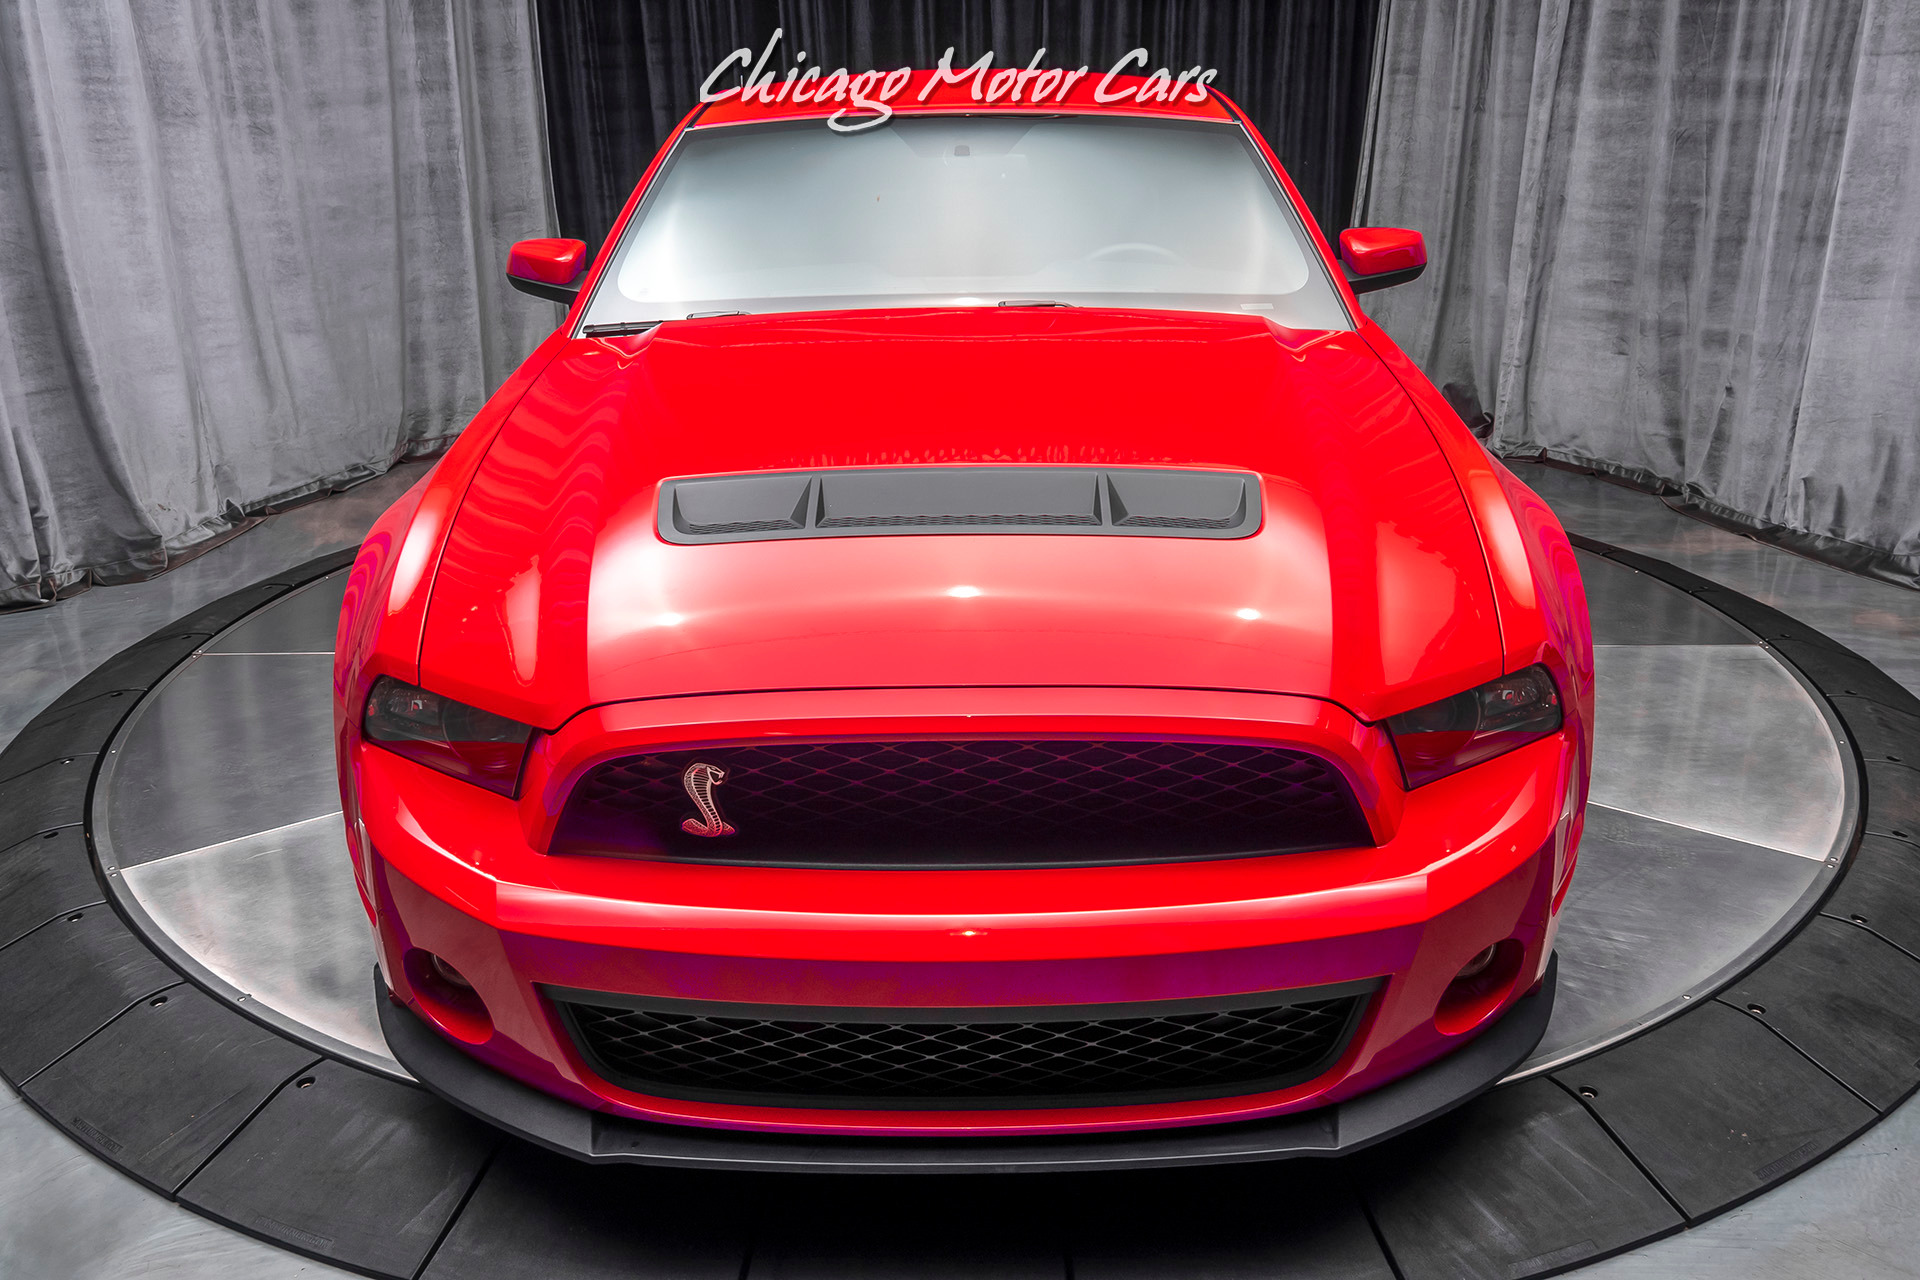 Used-2012-Ford-Shelby-GT500-54L-Supercharged-ONLY-6K-MILES